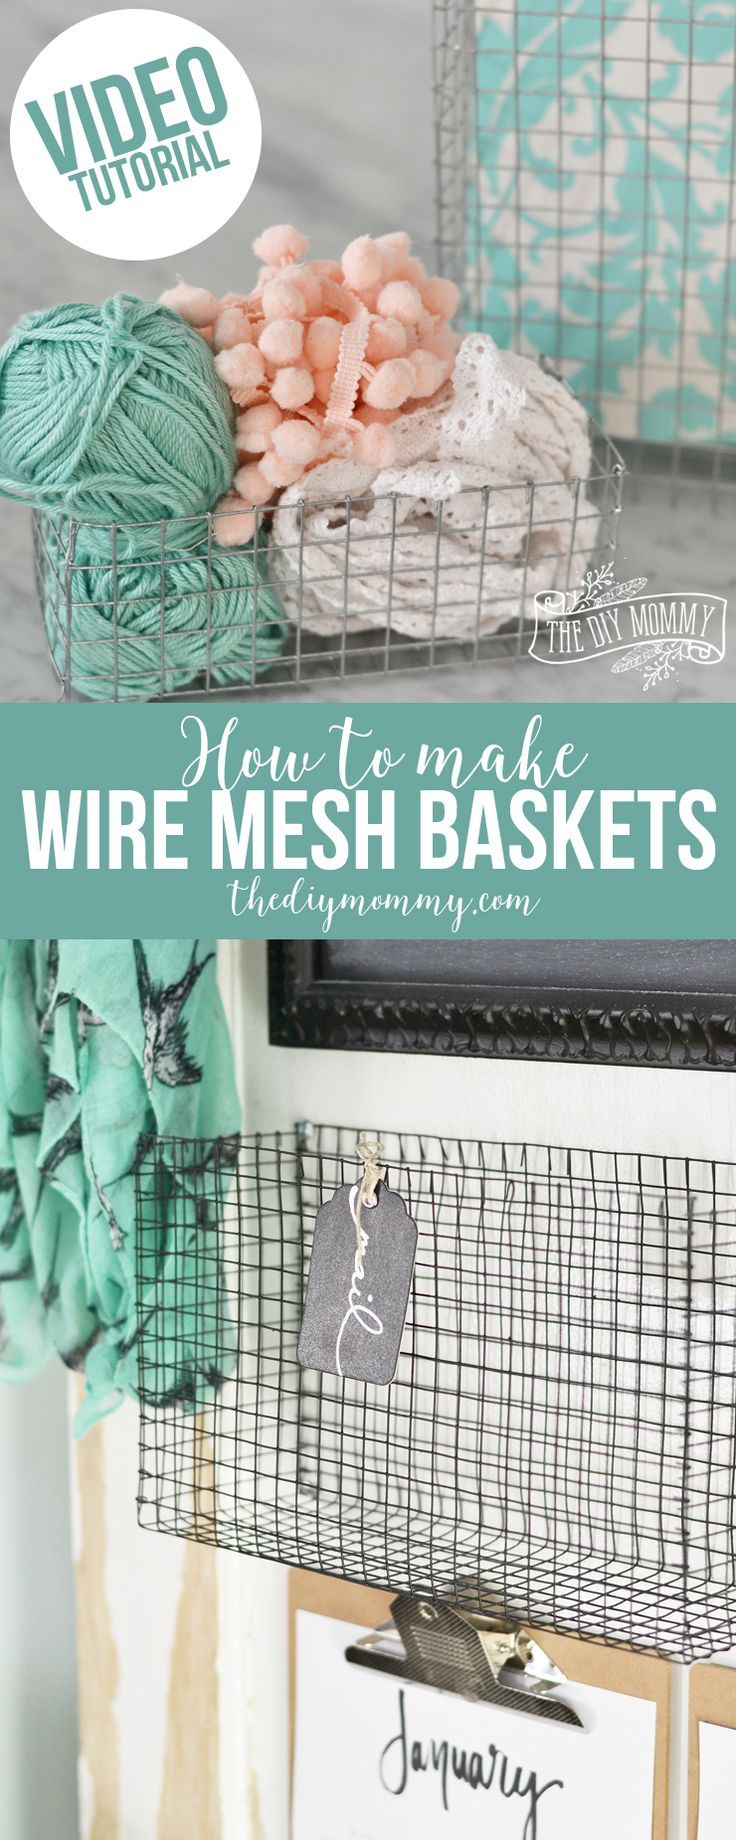 How to make DIY wire mesh baskets of any size - video tutorial ...